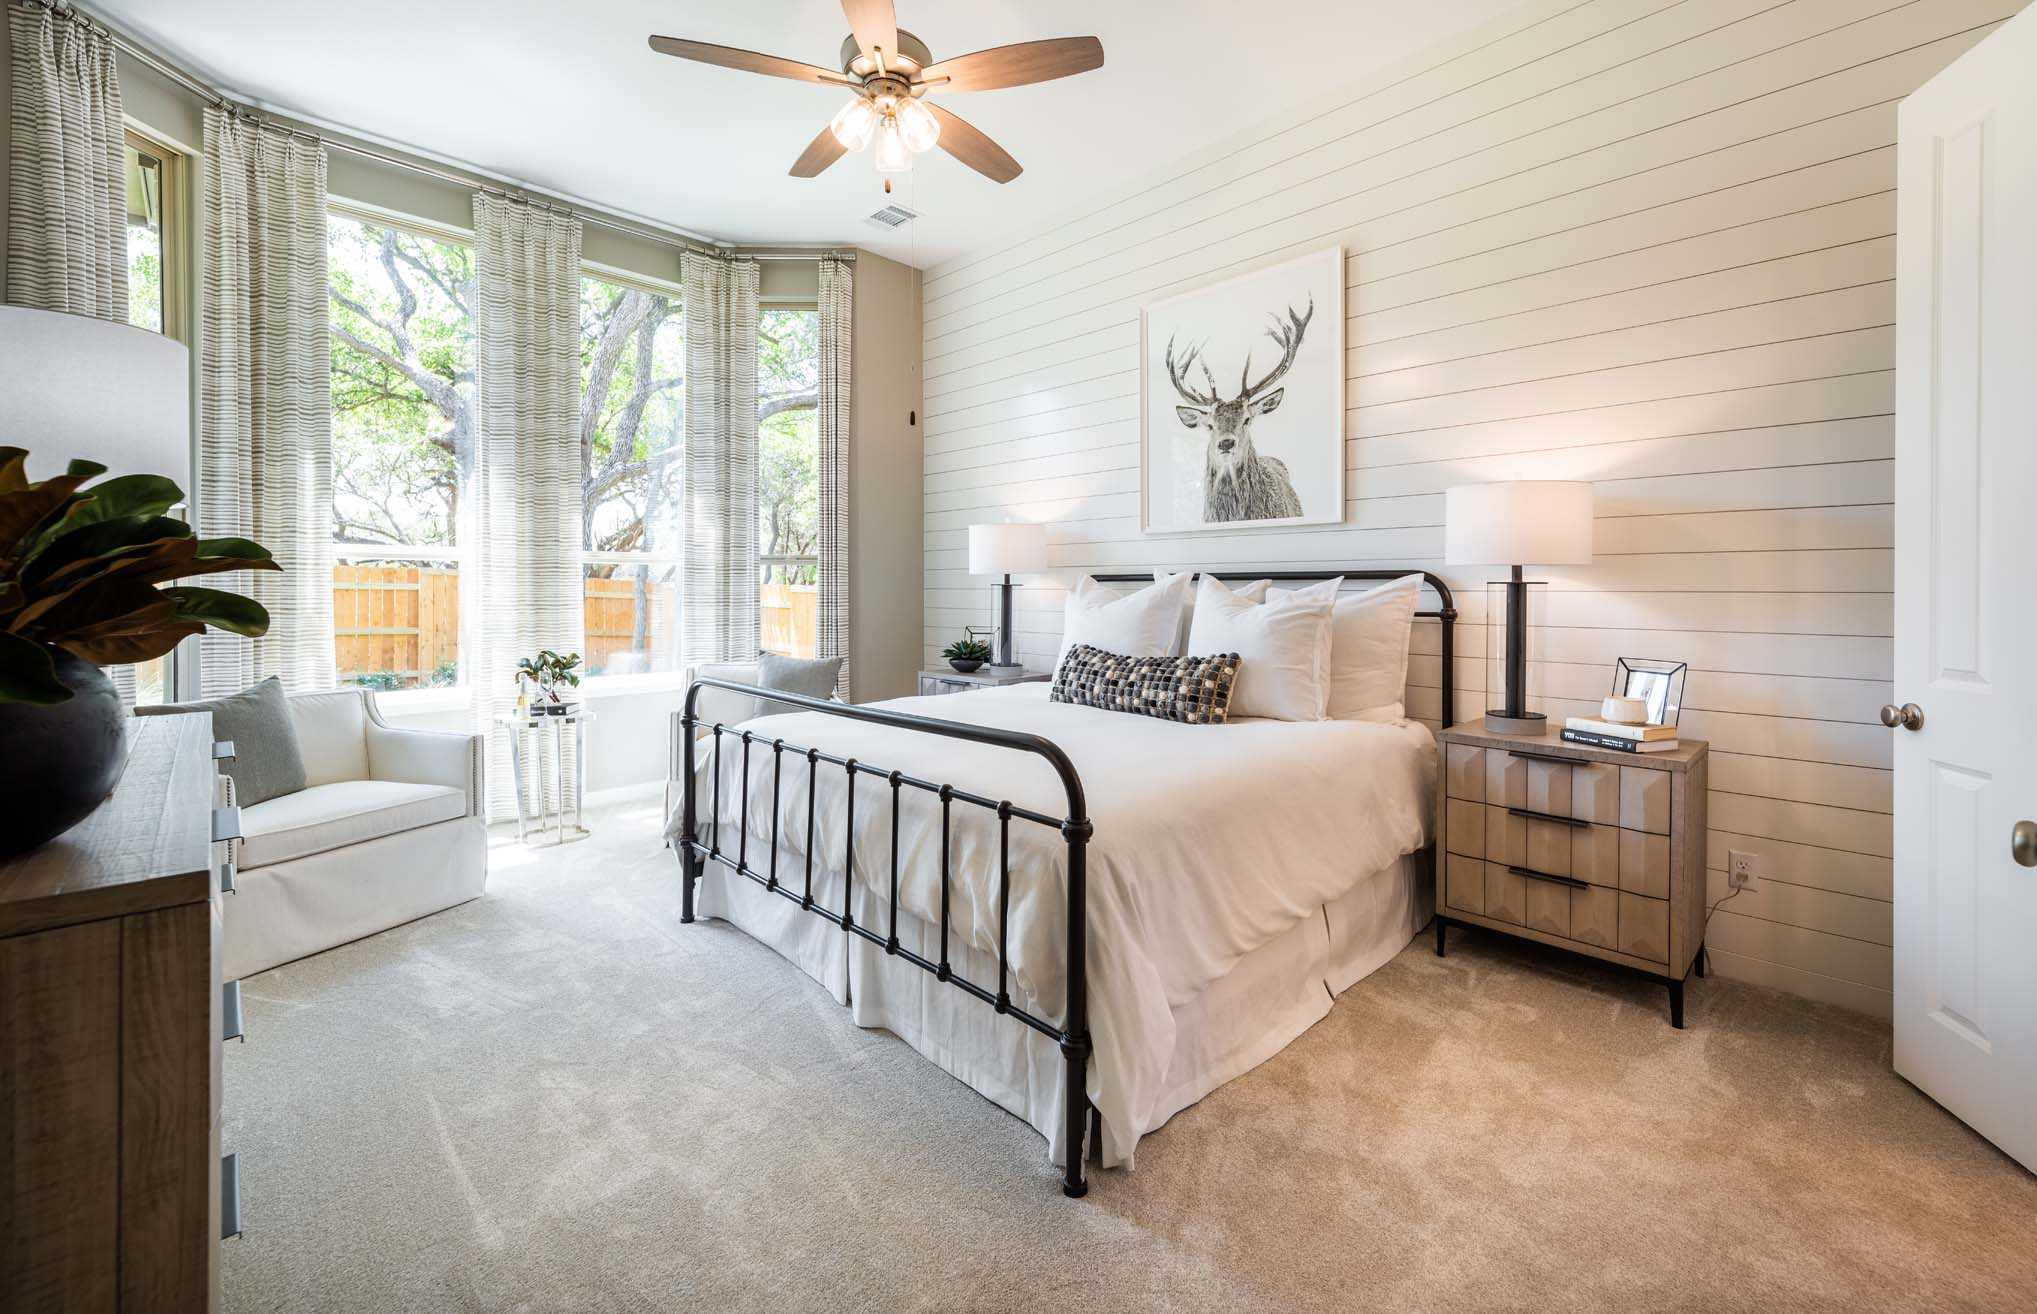 Bedroom featured in the Plan Denton By Highland Homes in San Antonio, TX